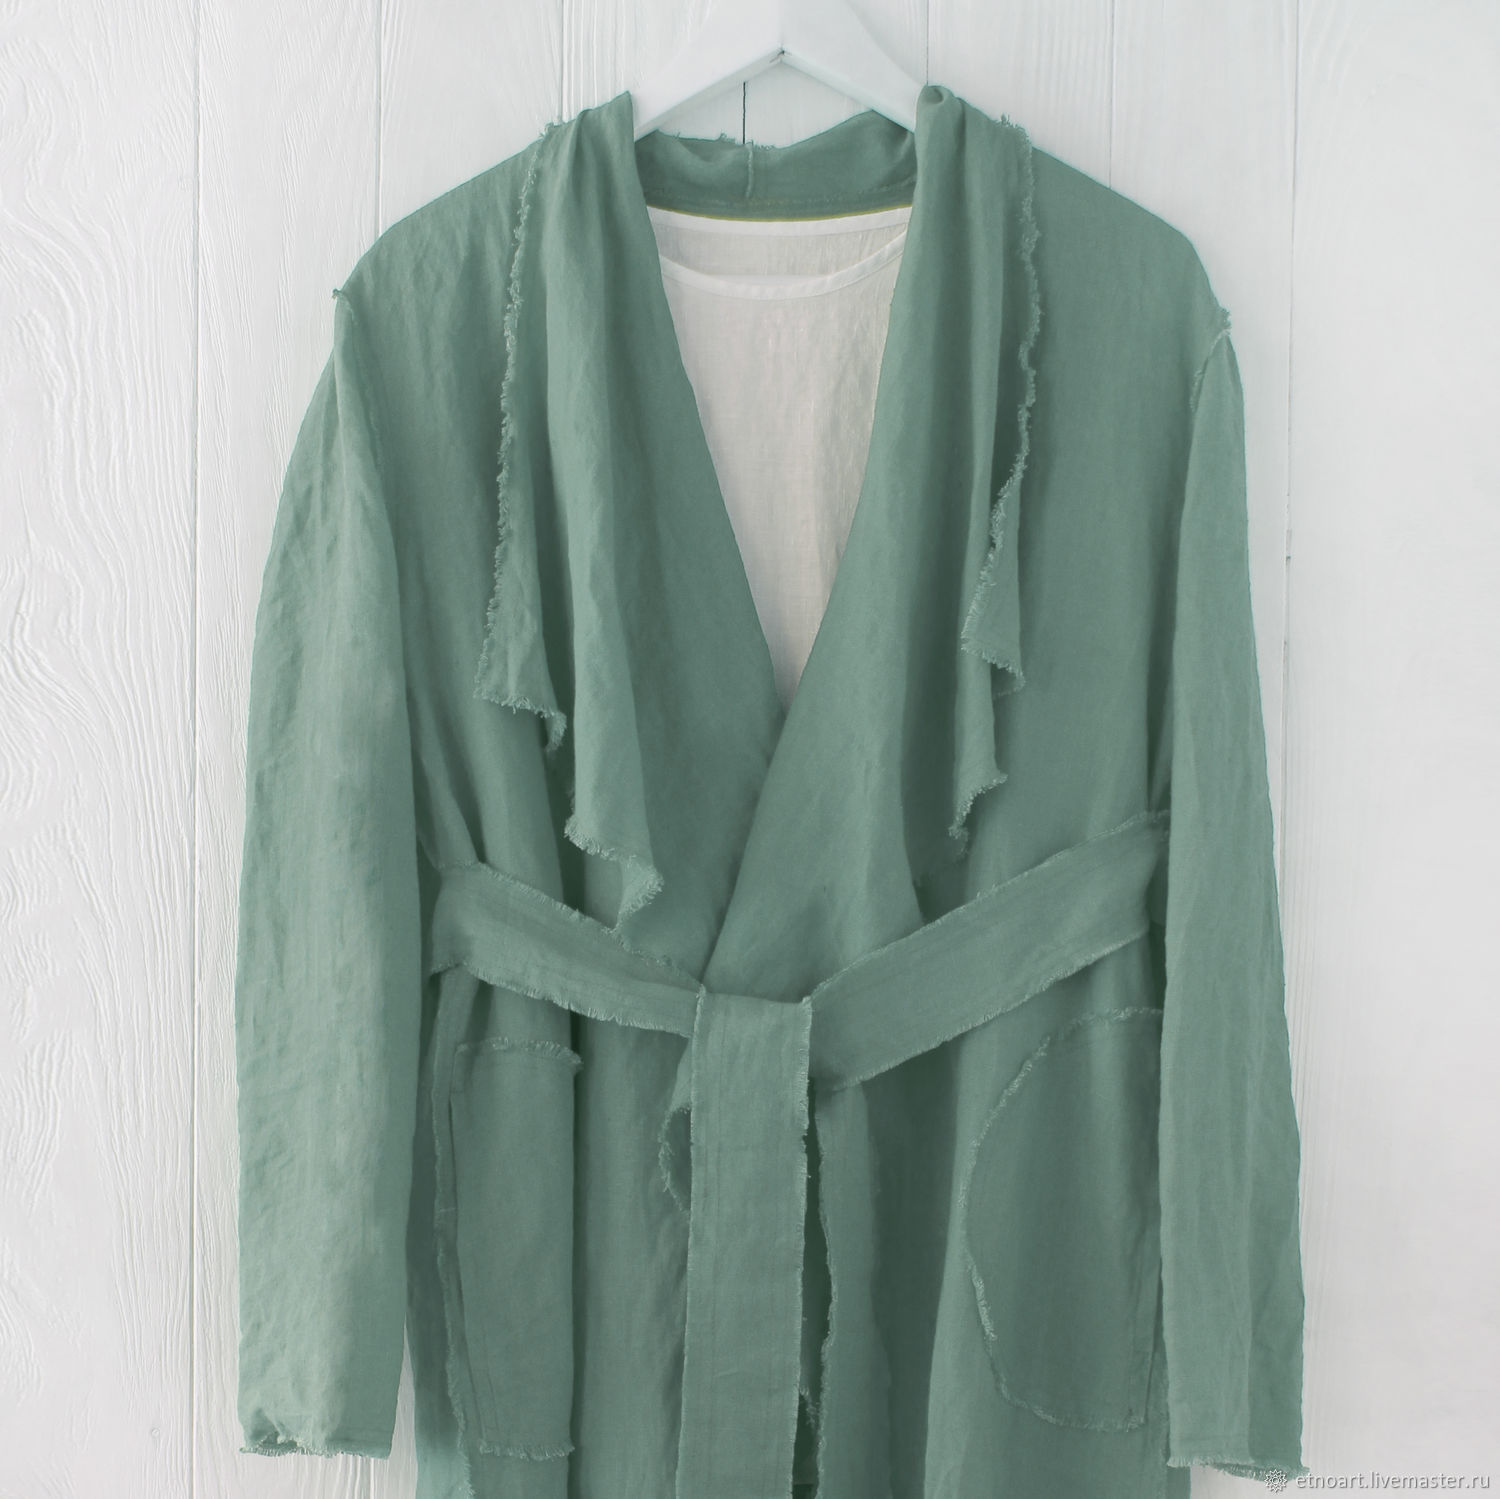 Linen cardigan with open edges and a belt, Cardigans, Tomsk,  Фото №1